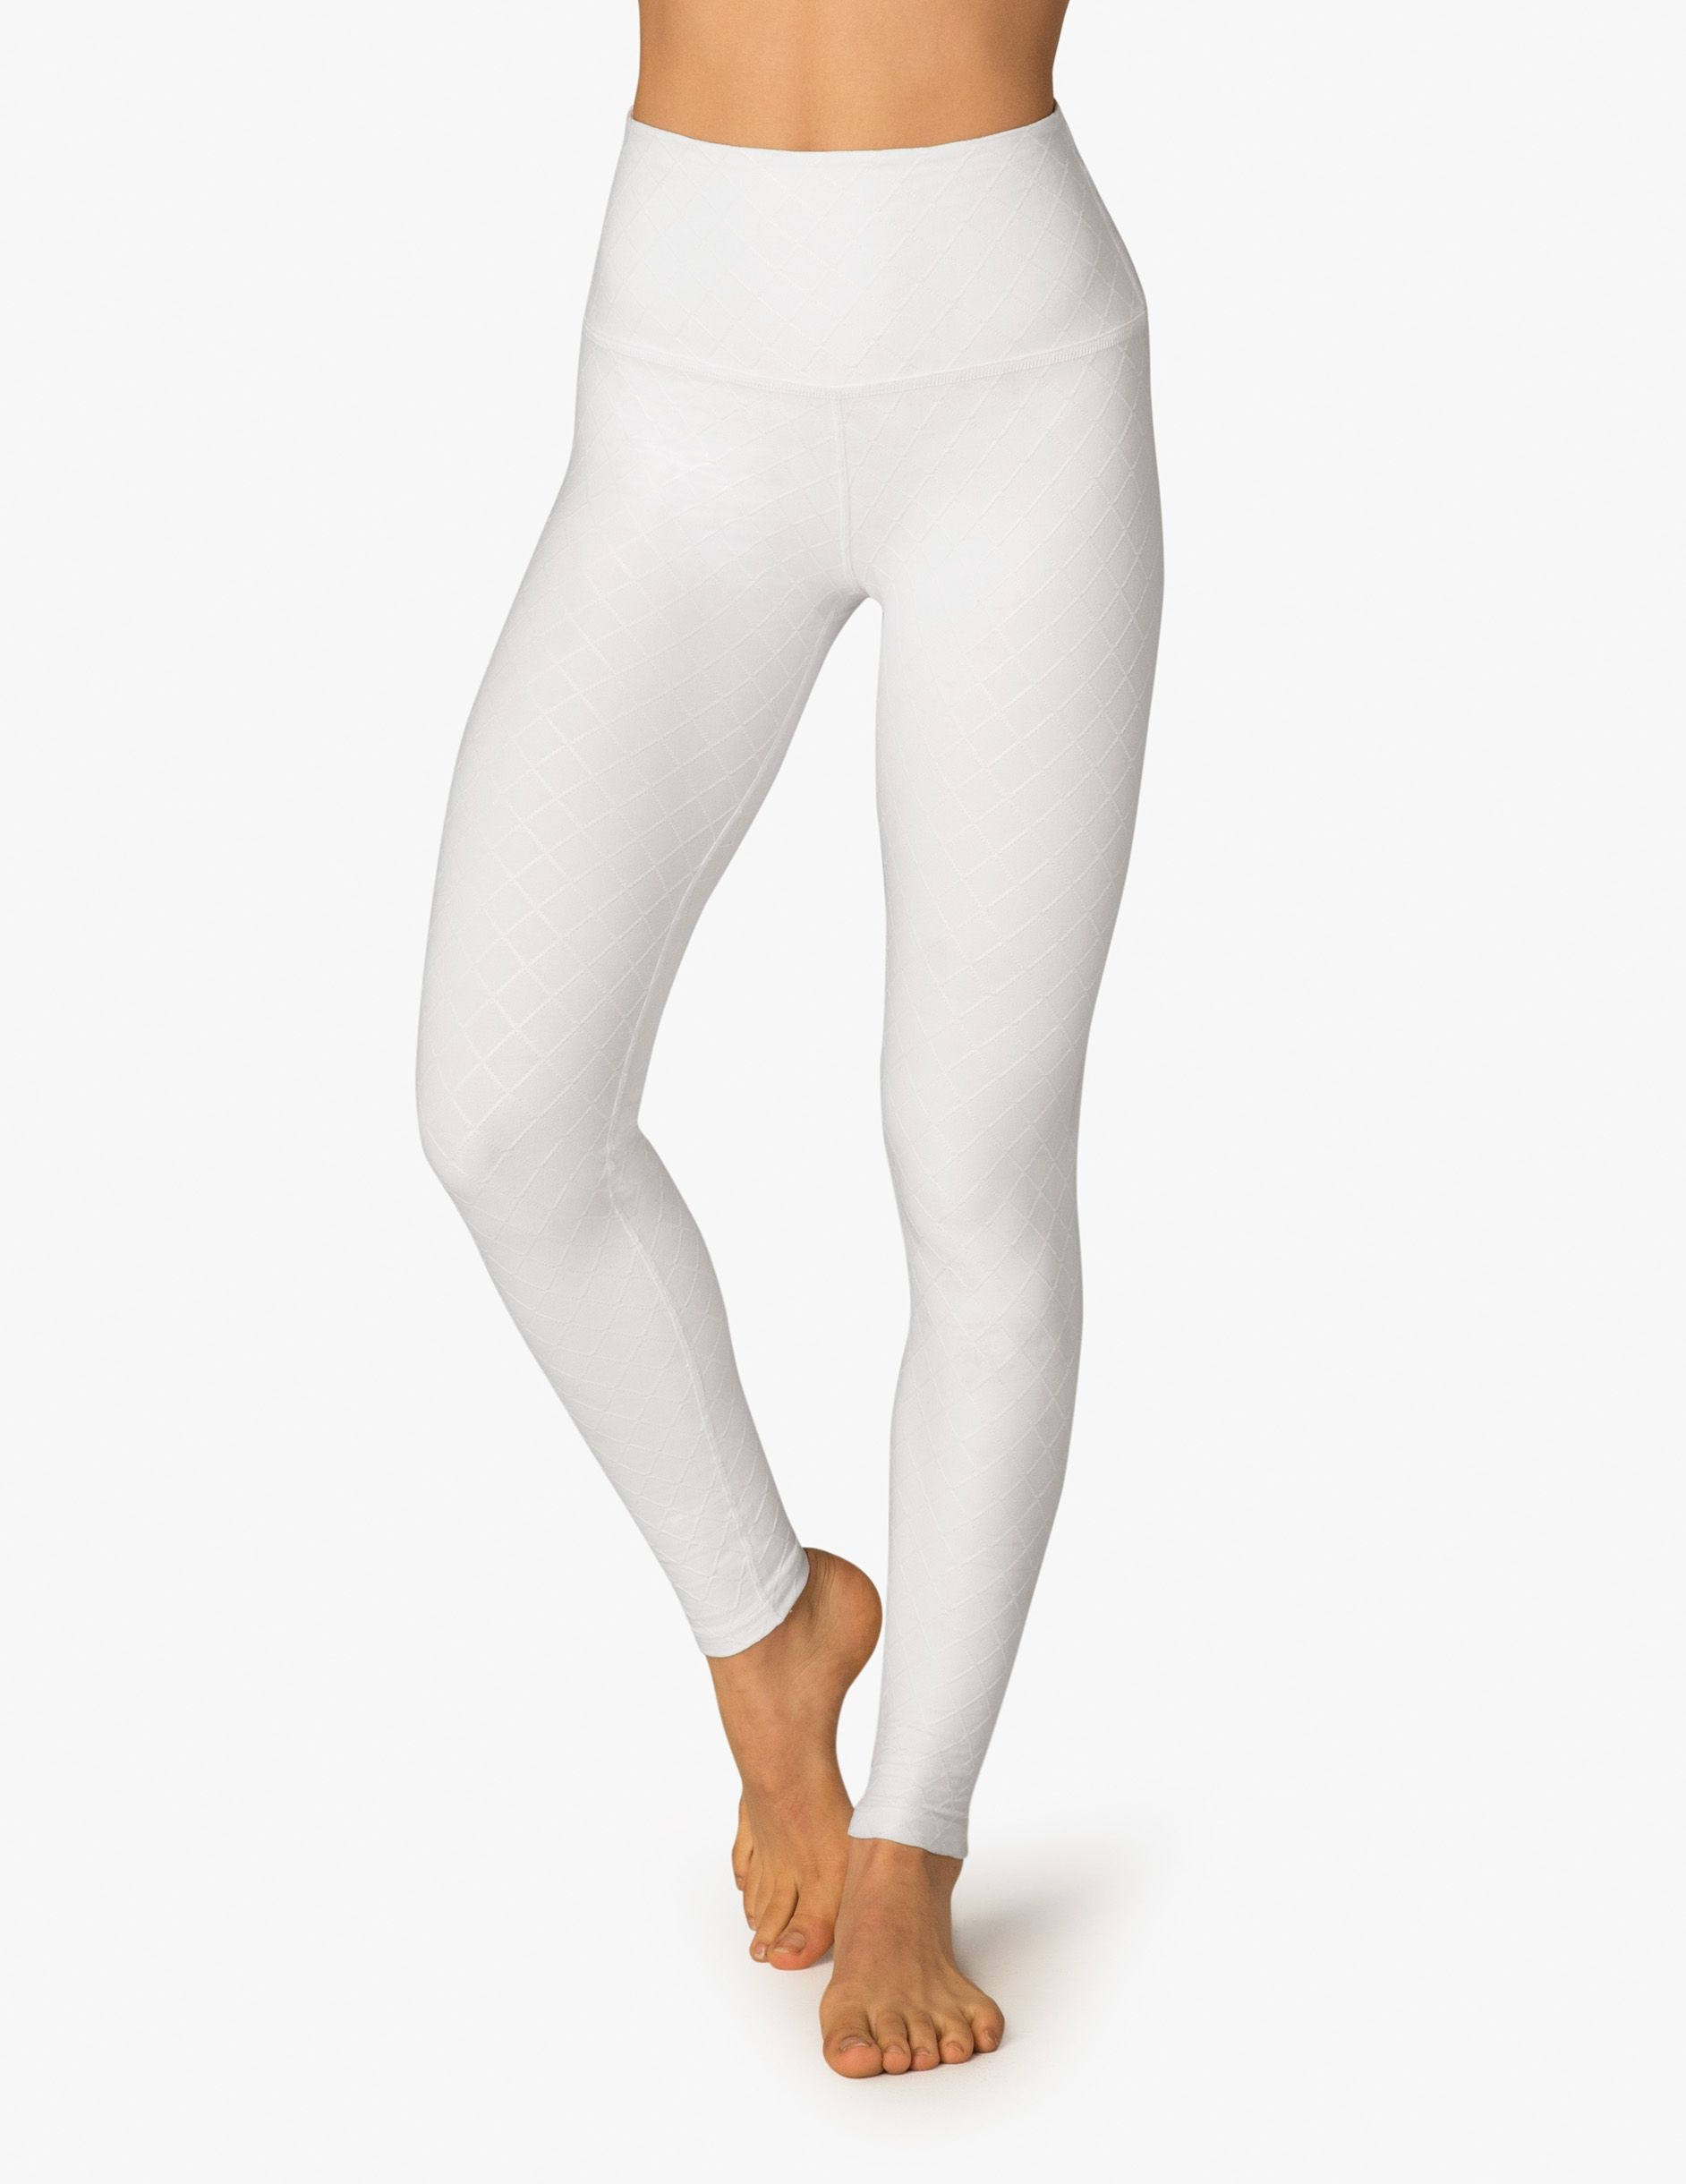 4503710014 Can't Quilt You High Waisted Legging | High waisted leggings ...